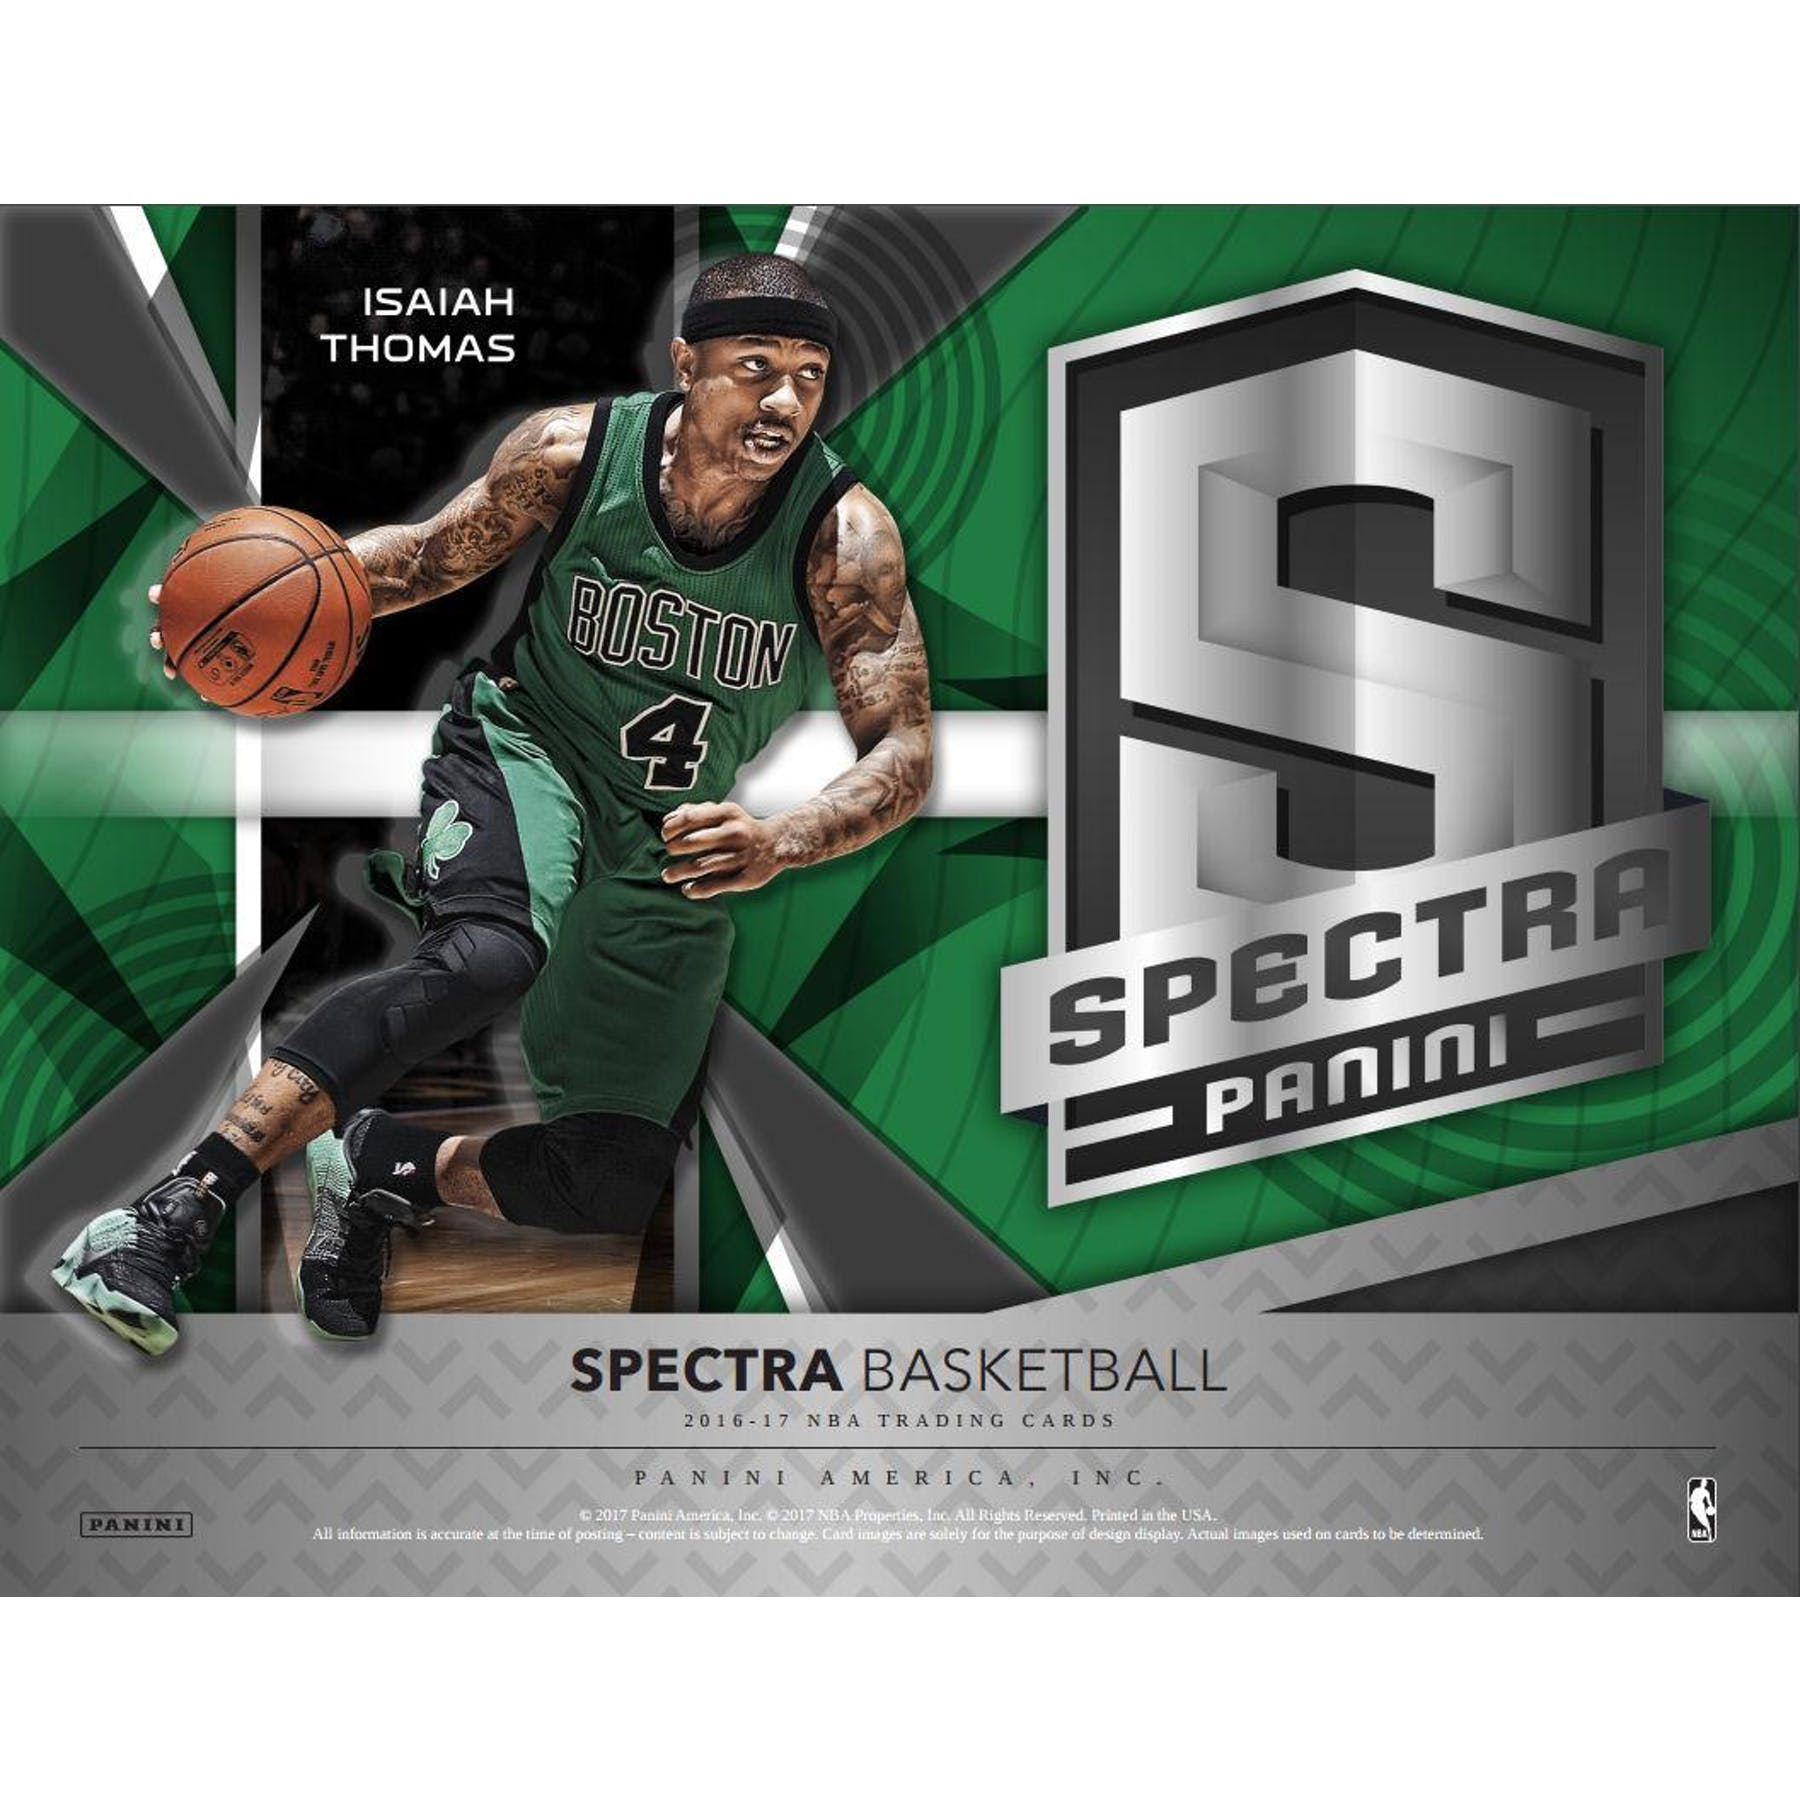 2016-17 Panini Spectra Basketball Hobby Box | Eastridge Sports Cards